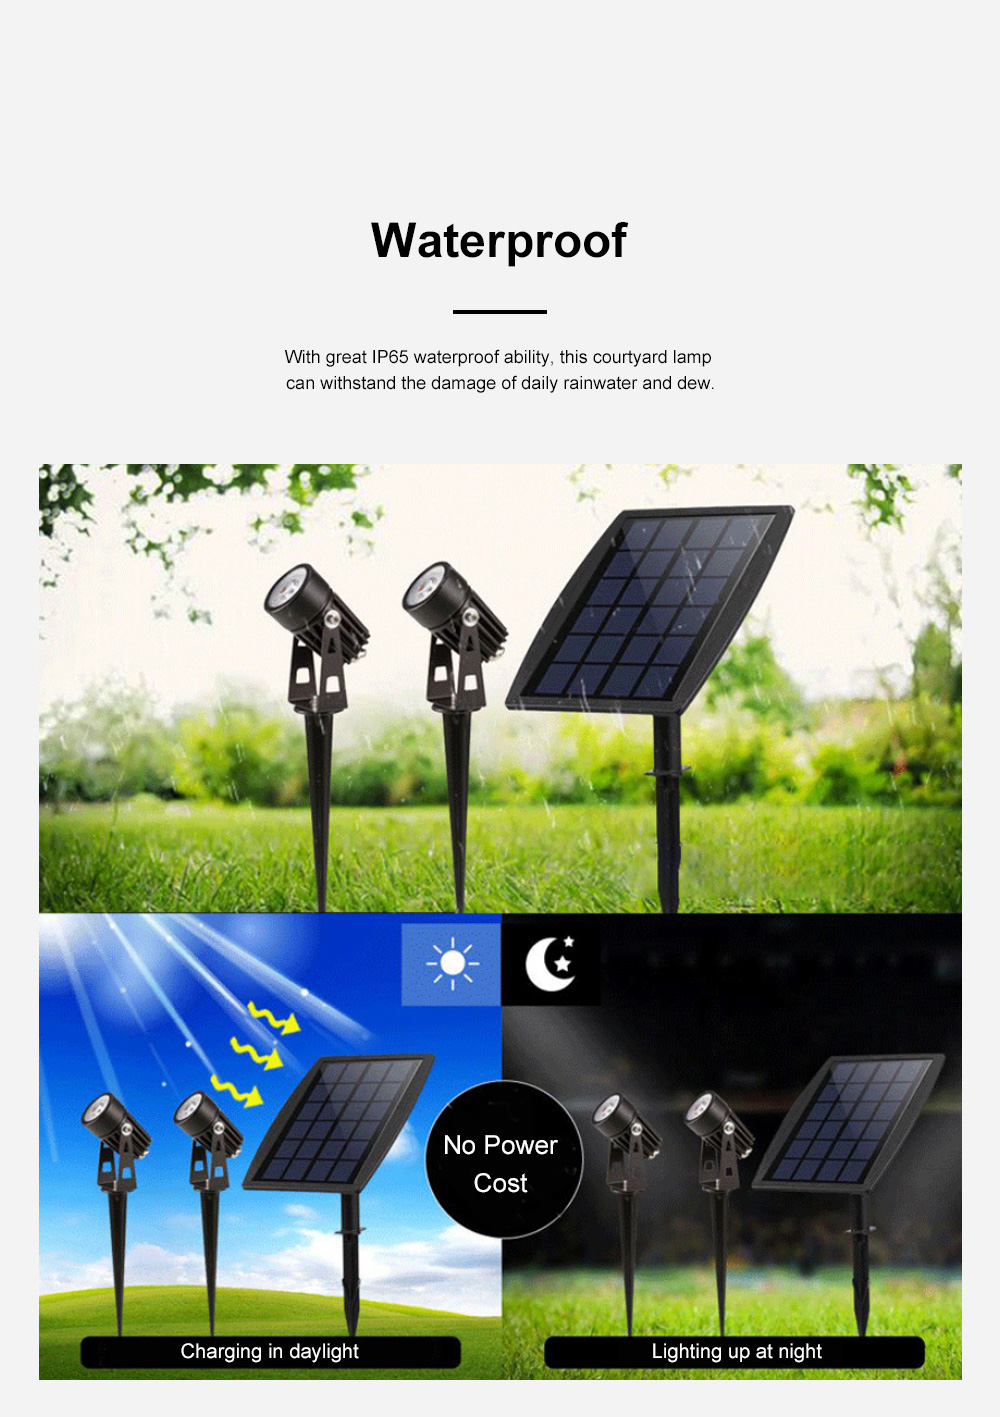 Waterproof Solar Energy Powered Courtyard LED Garden Lamp Large Power Lawn Spot Light Projector Lamp 4